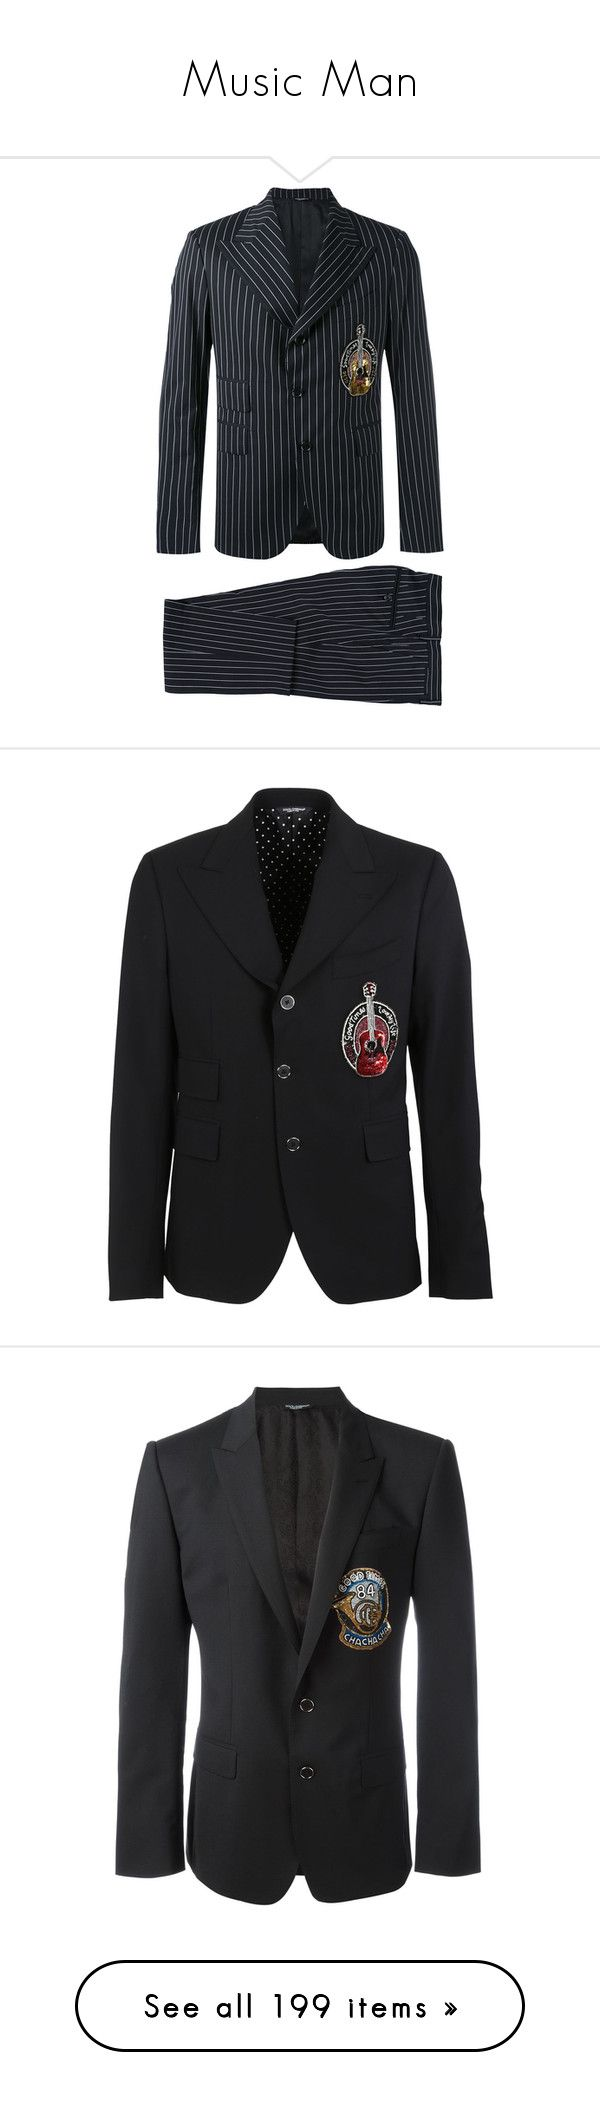 """""""Music Man"""" by nataliesharin ❤ liked on Polyvore featuring men's fashion, men's clothing, men's suits, black, mens slim fit pinstripe suit, mens slim suits, mens slim fit suits, dolce gabbana mens suits, mens pinstripe suit and men's sportcoats"""